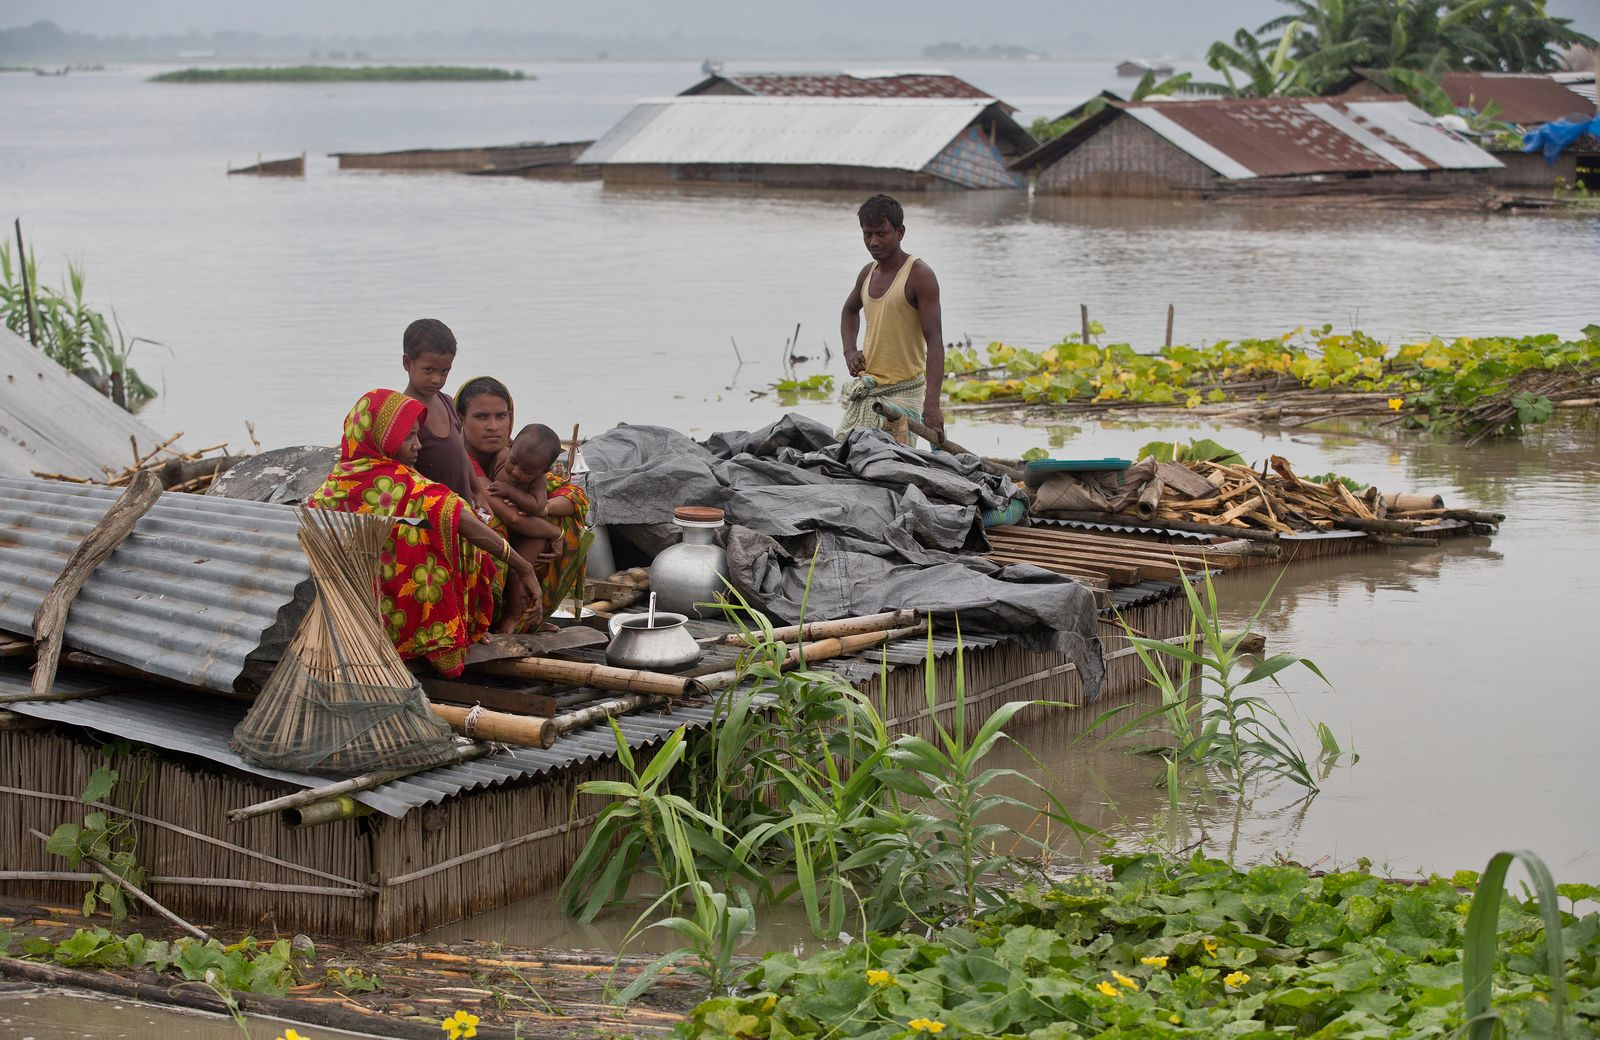 Flood affected villagers take shelter on the roof of their submerged houses in Katahguri village along the river Brahmaputra, east of Gauhati, India, Sunday, July 14, 2019. Officials in northeastern India said more than a dozen people were killed and over a million affected by flooding. Rain-triggered floods, mudslides and lightning have left a trail of destruction in other parts of South Asia. (AP Photo/Anupam Nath)